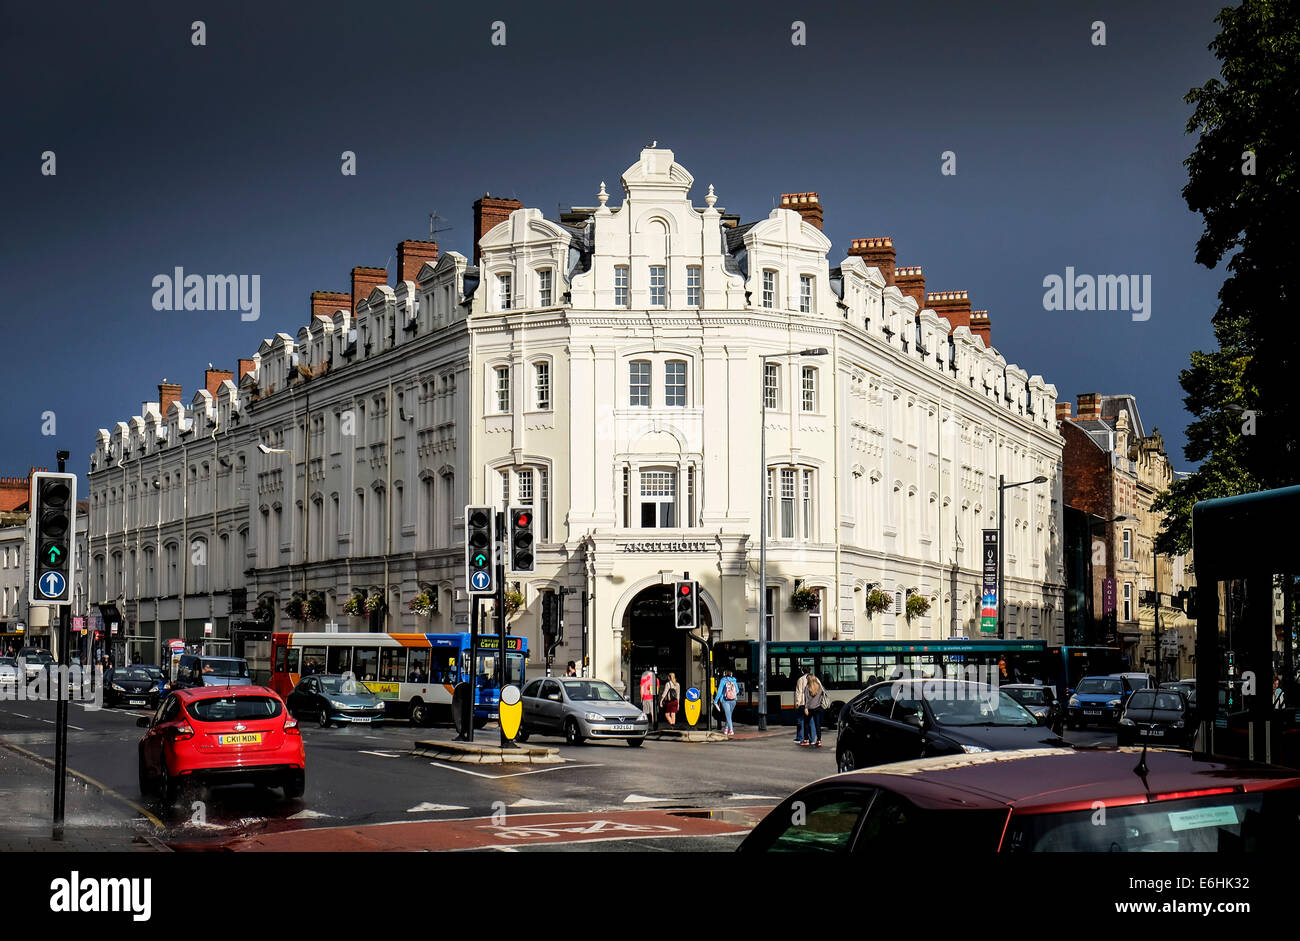 The Angel Hotel in Cardiff. - Stock Image